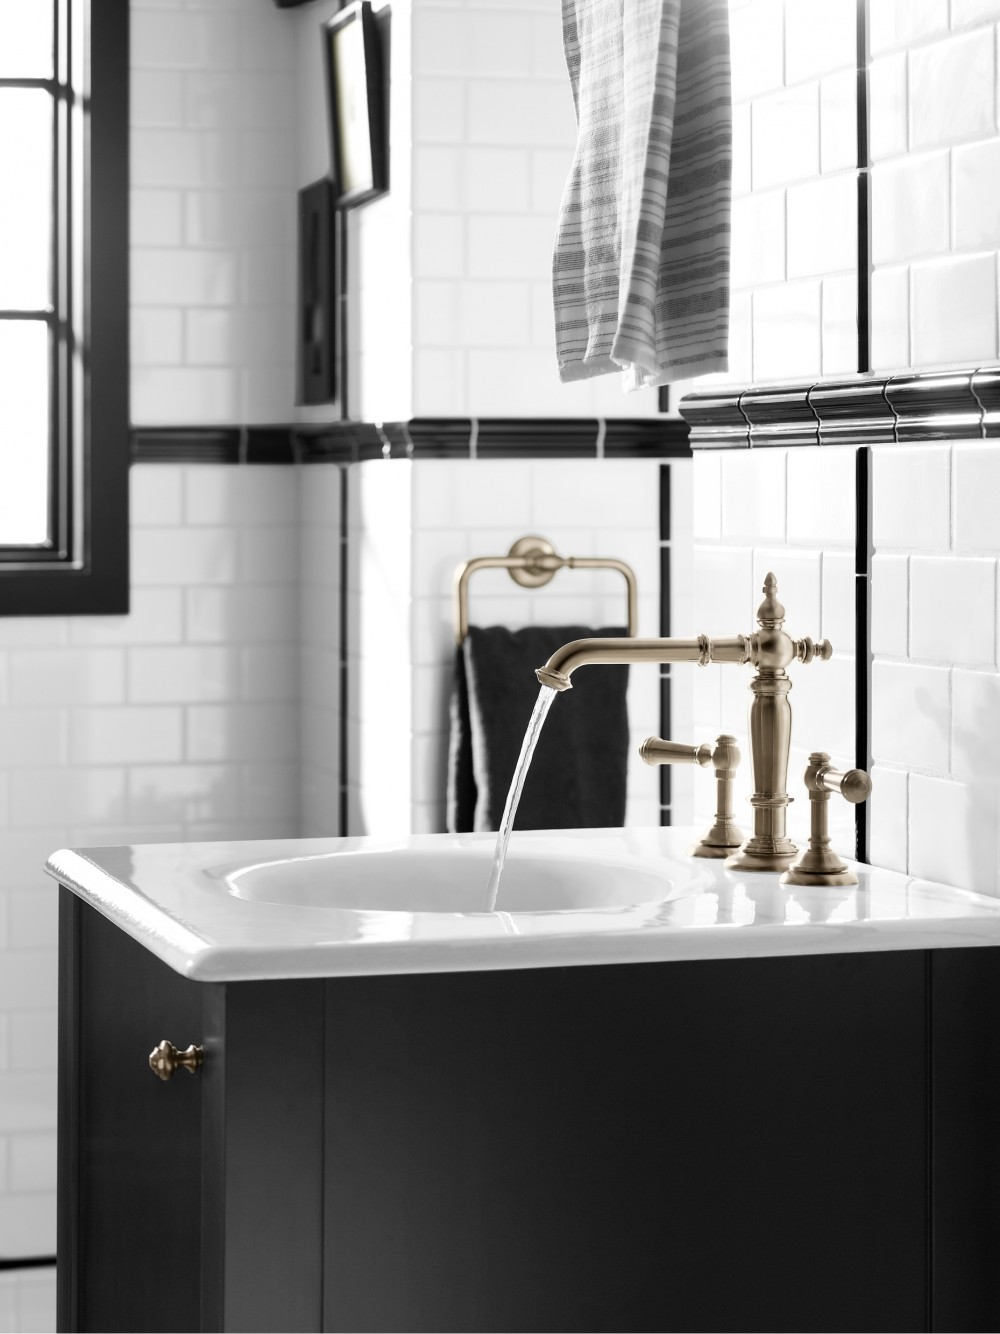 Artifacts Faucet 72760,Iron/Impressions Vanity Top 3048